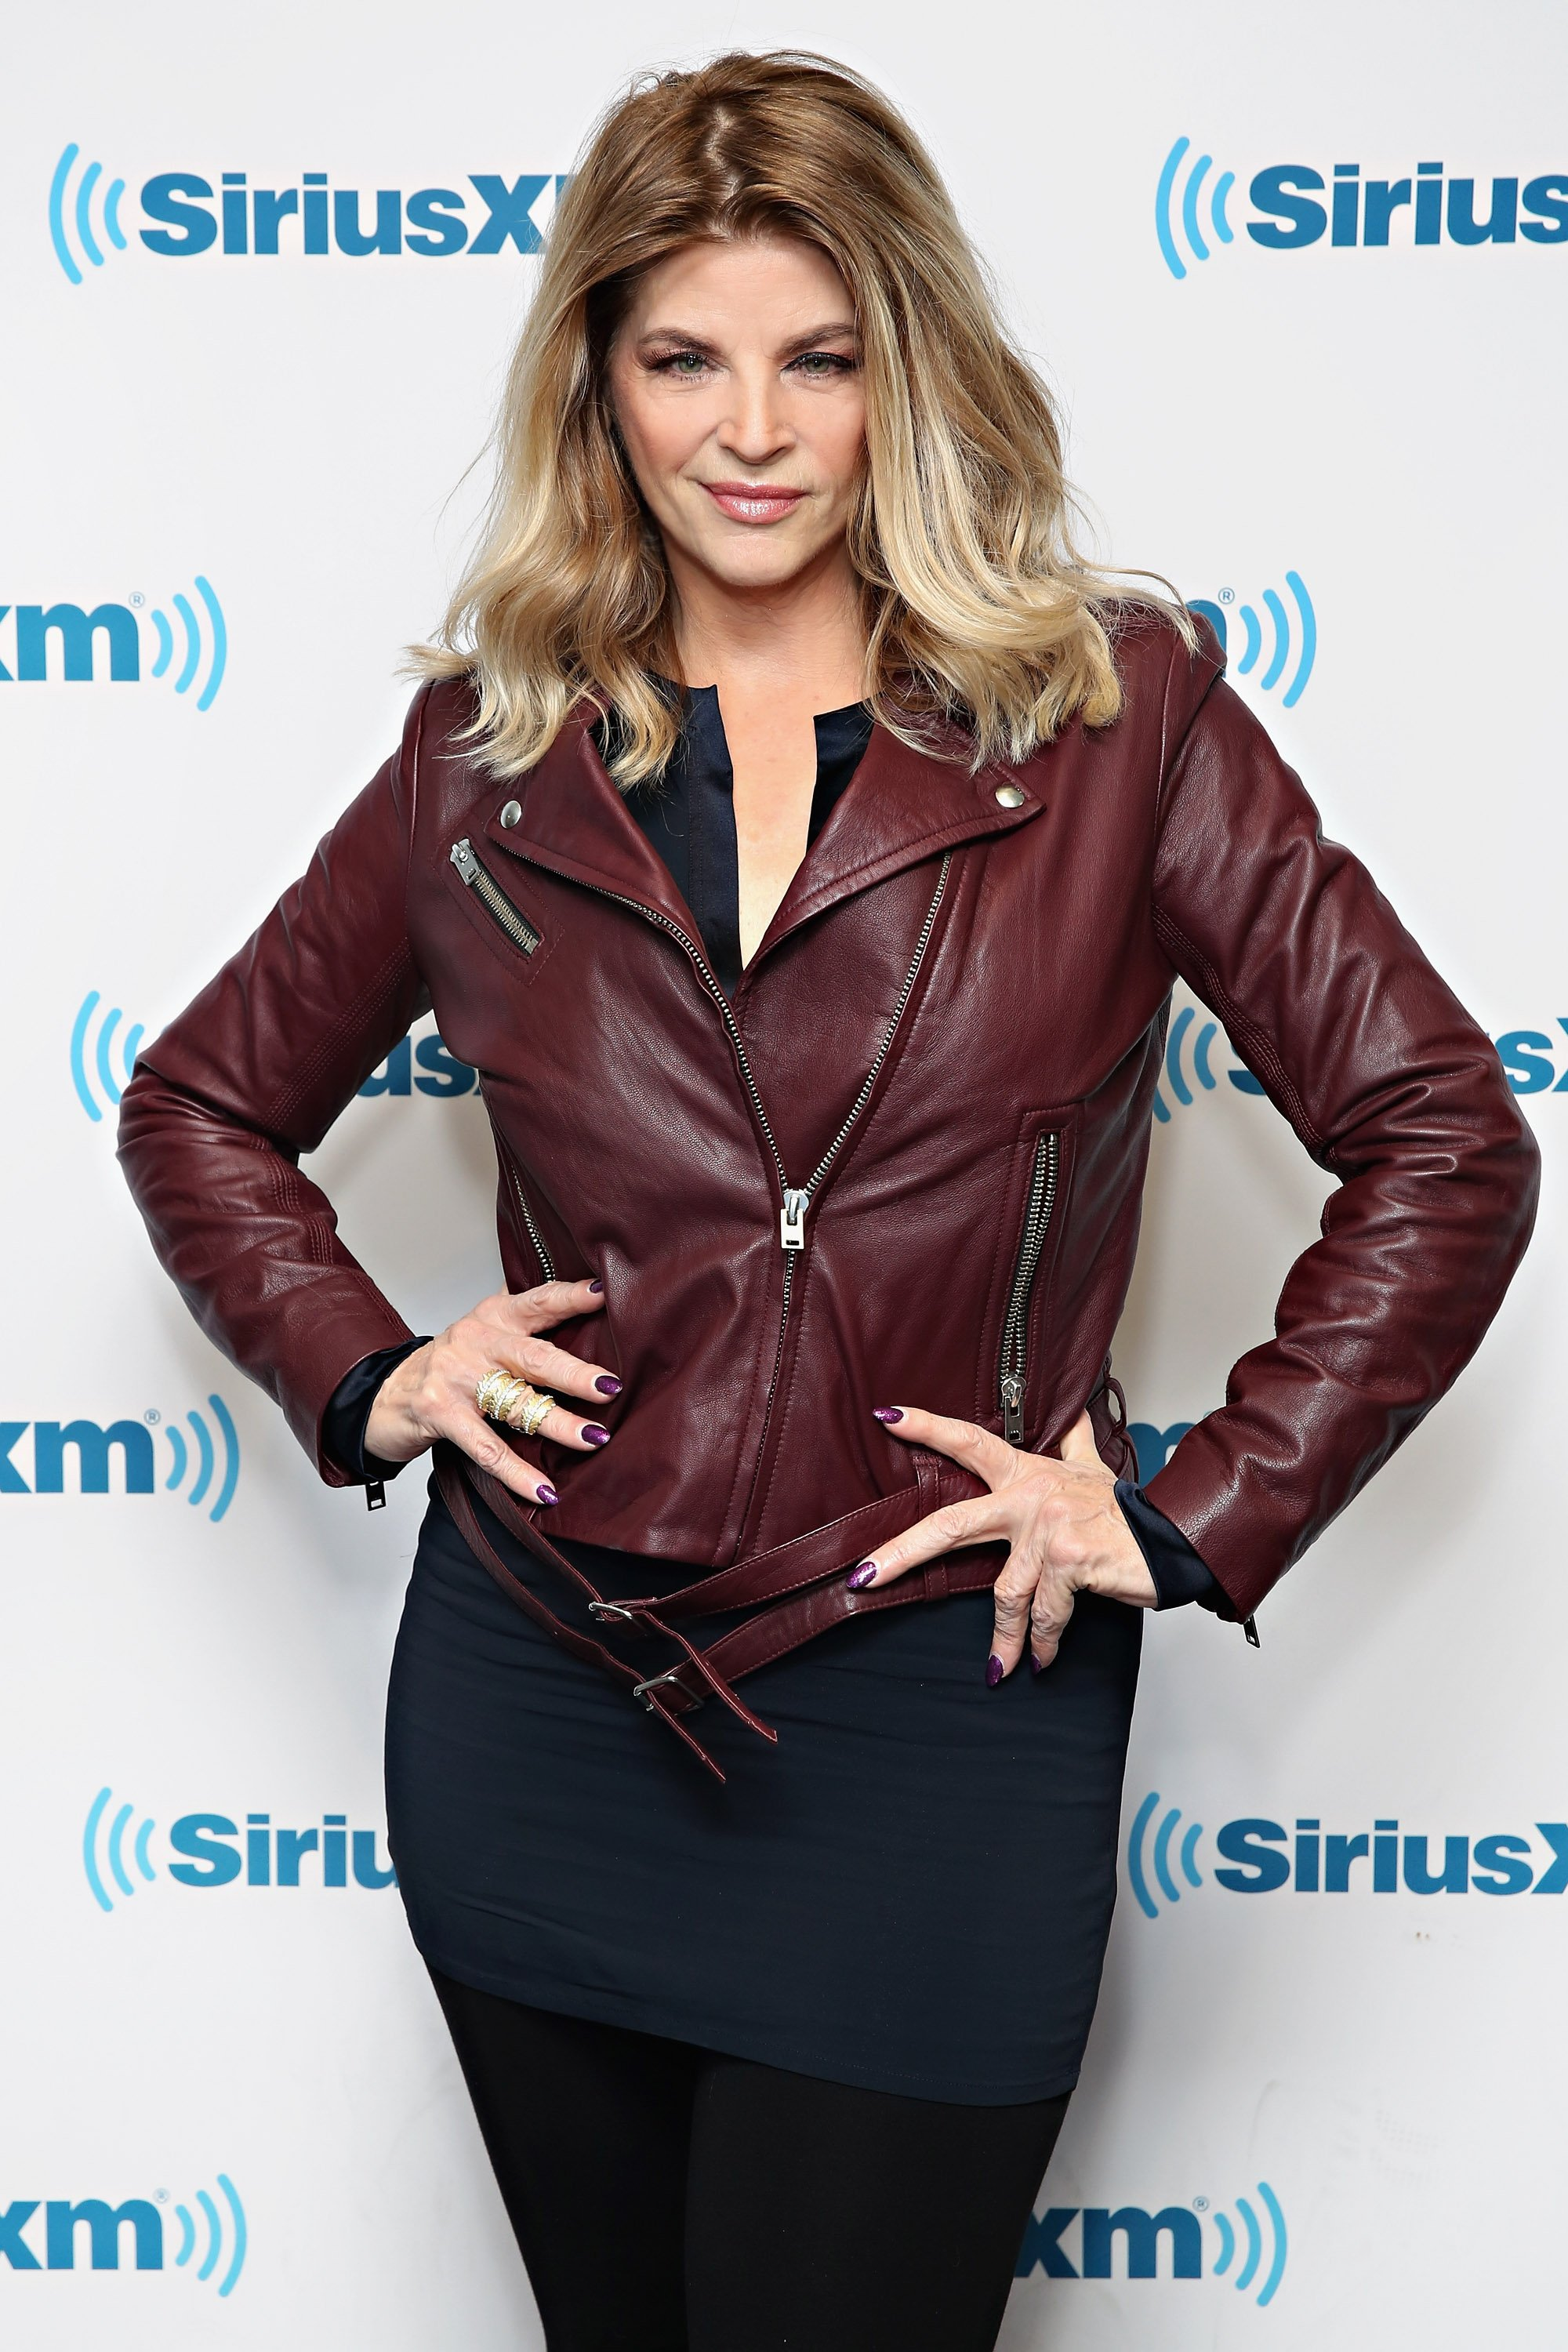 Kirstie Alley visits the SiriusXM Studios on January 6, 2016, in New York City. | Source: Getty Images.